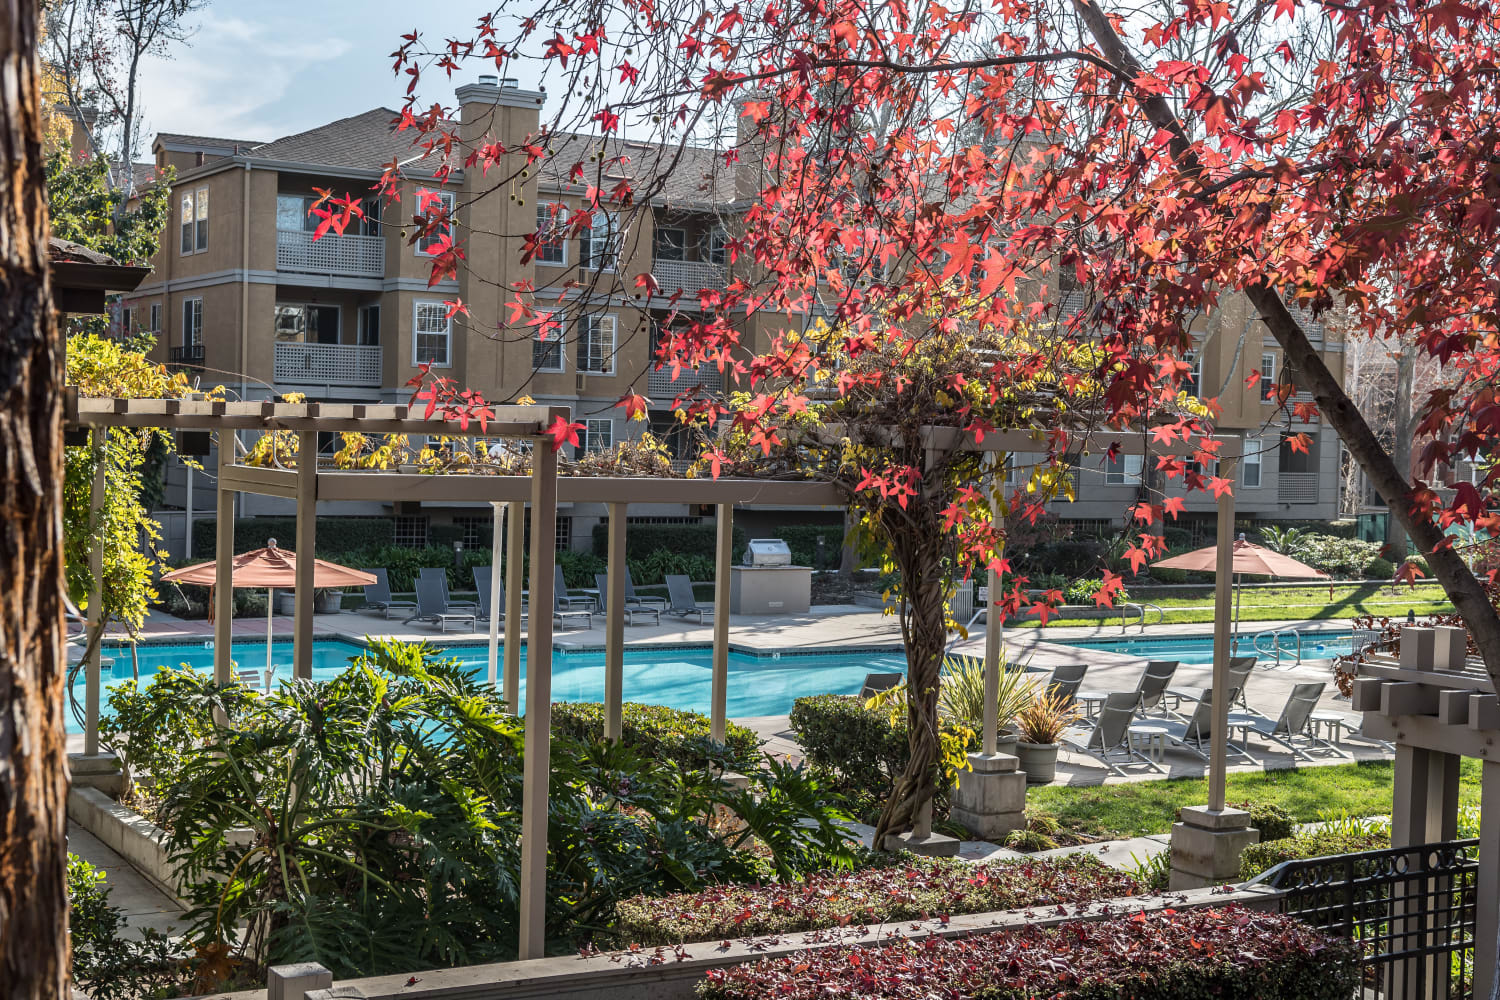 Swimming pool at Bella Vista Apartments in Santa Clara, California